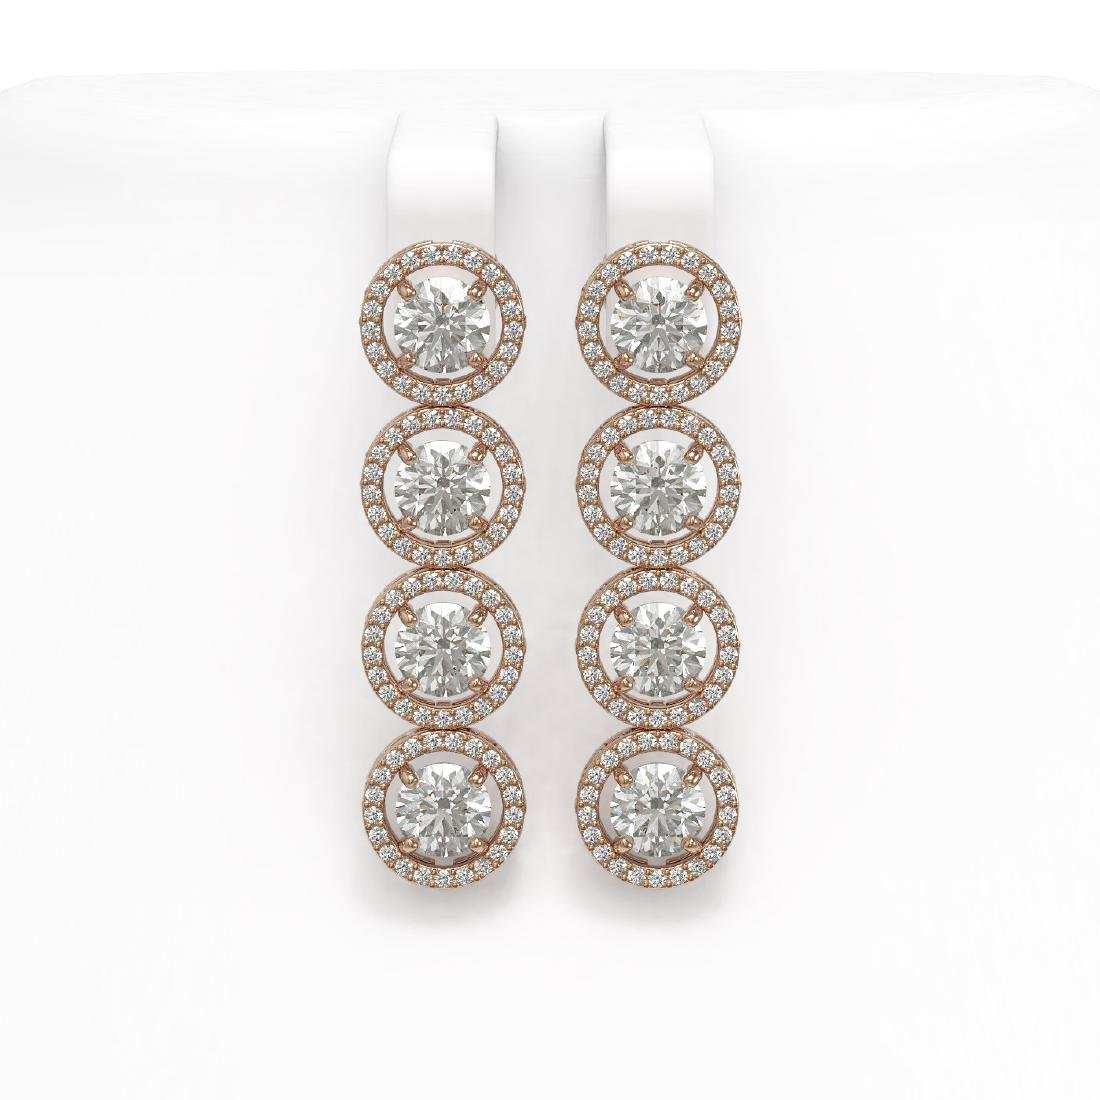 6.14 CTW Diamond Designer Earrings 18K Rose Gold